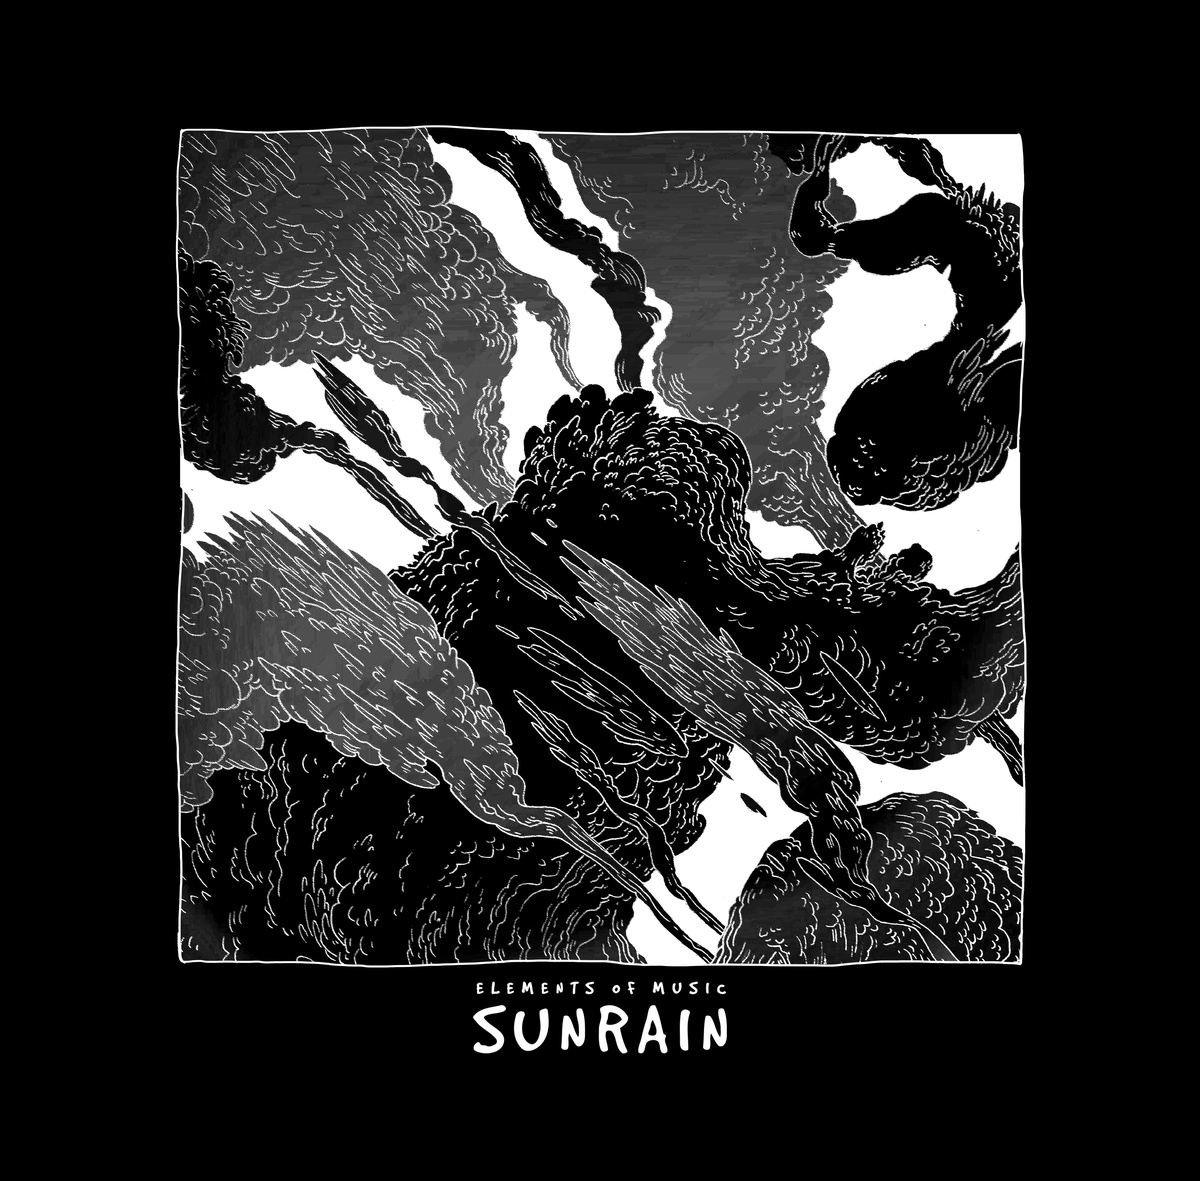 Elements of Music - Sunrain - Get along feat Anderson .Paak, Blu